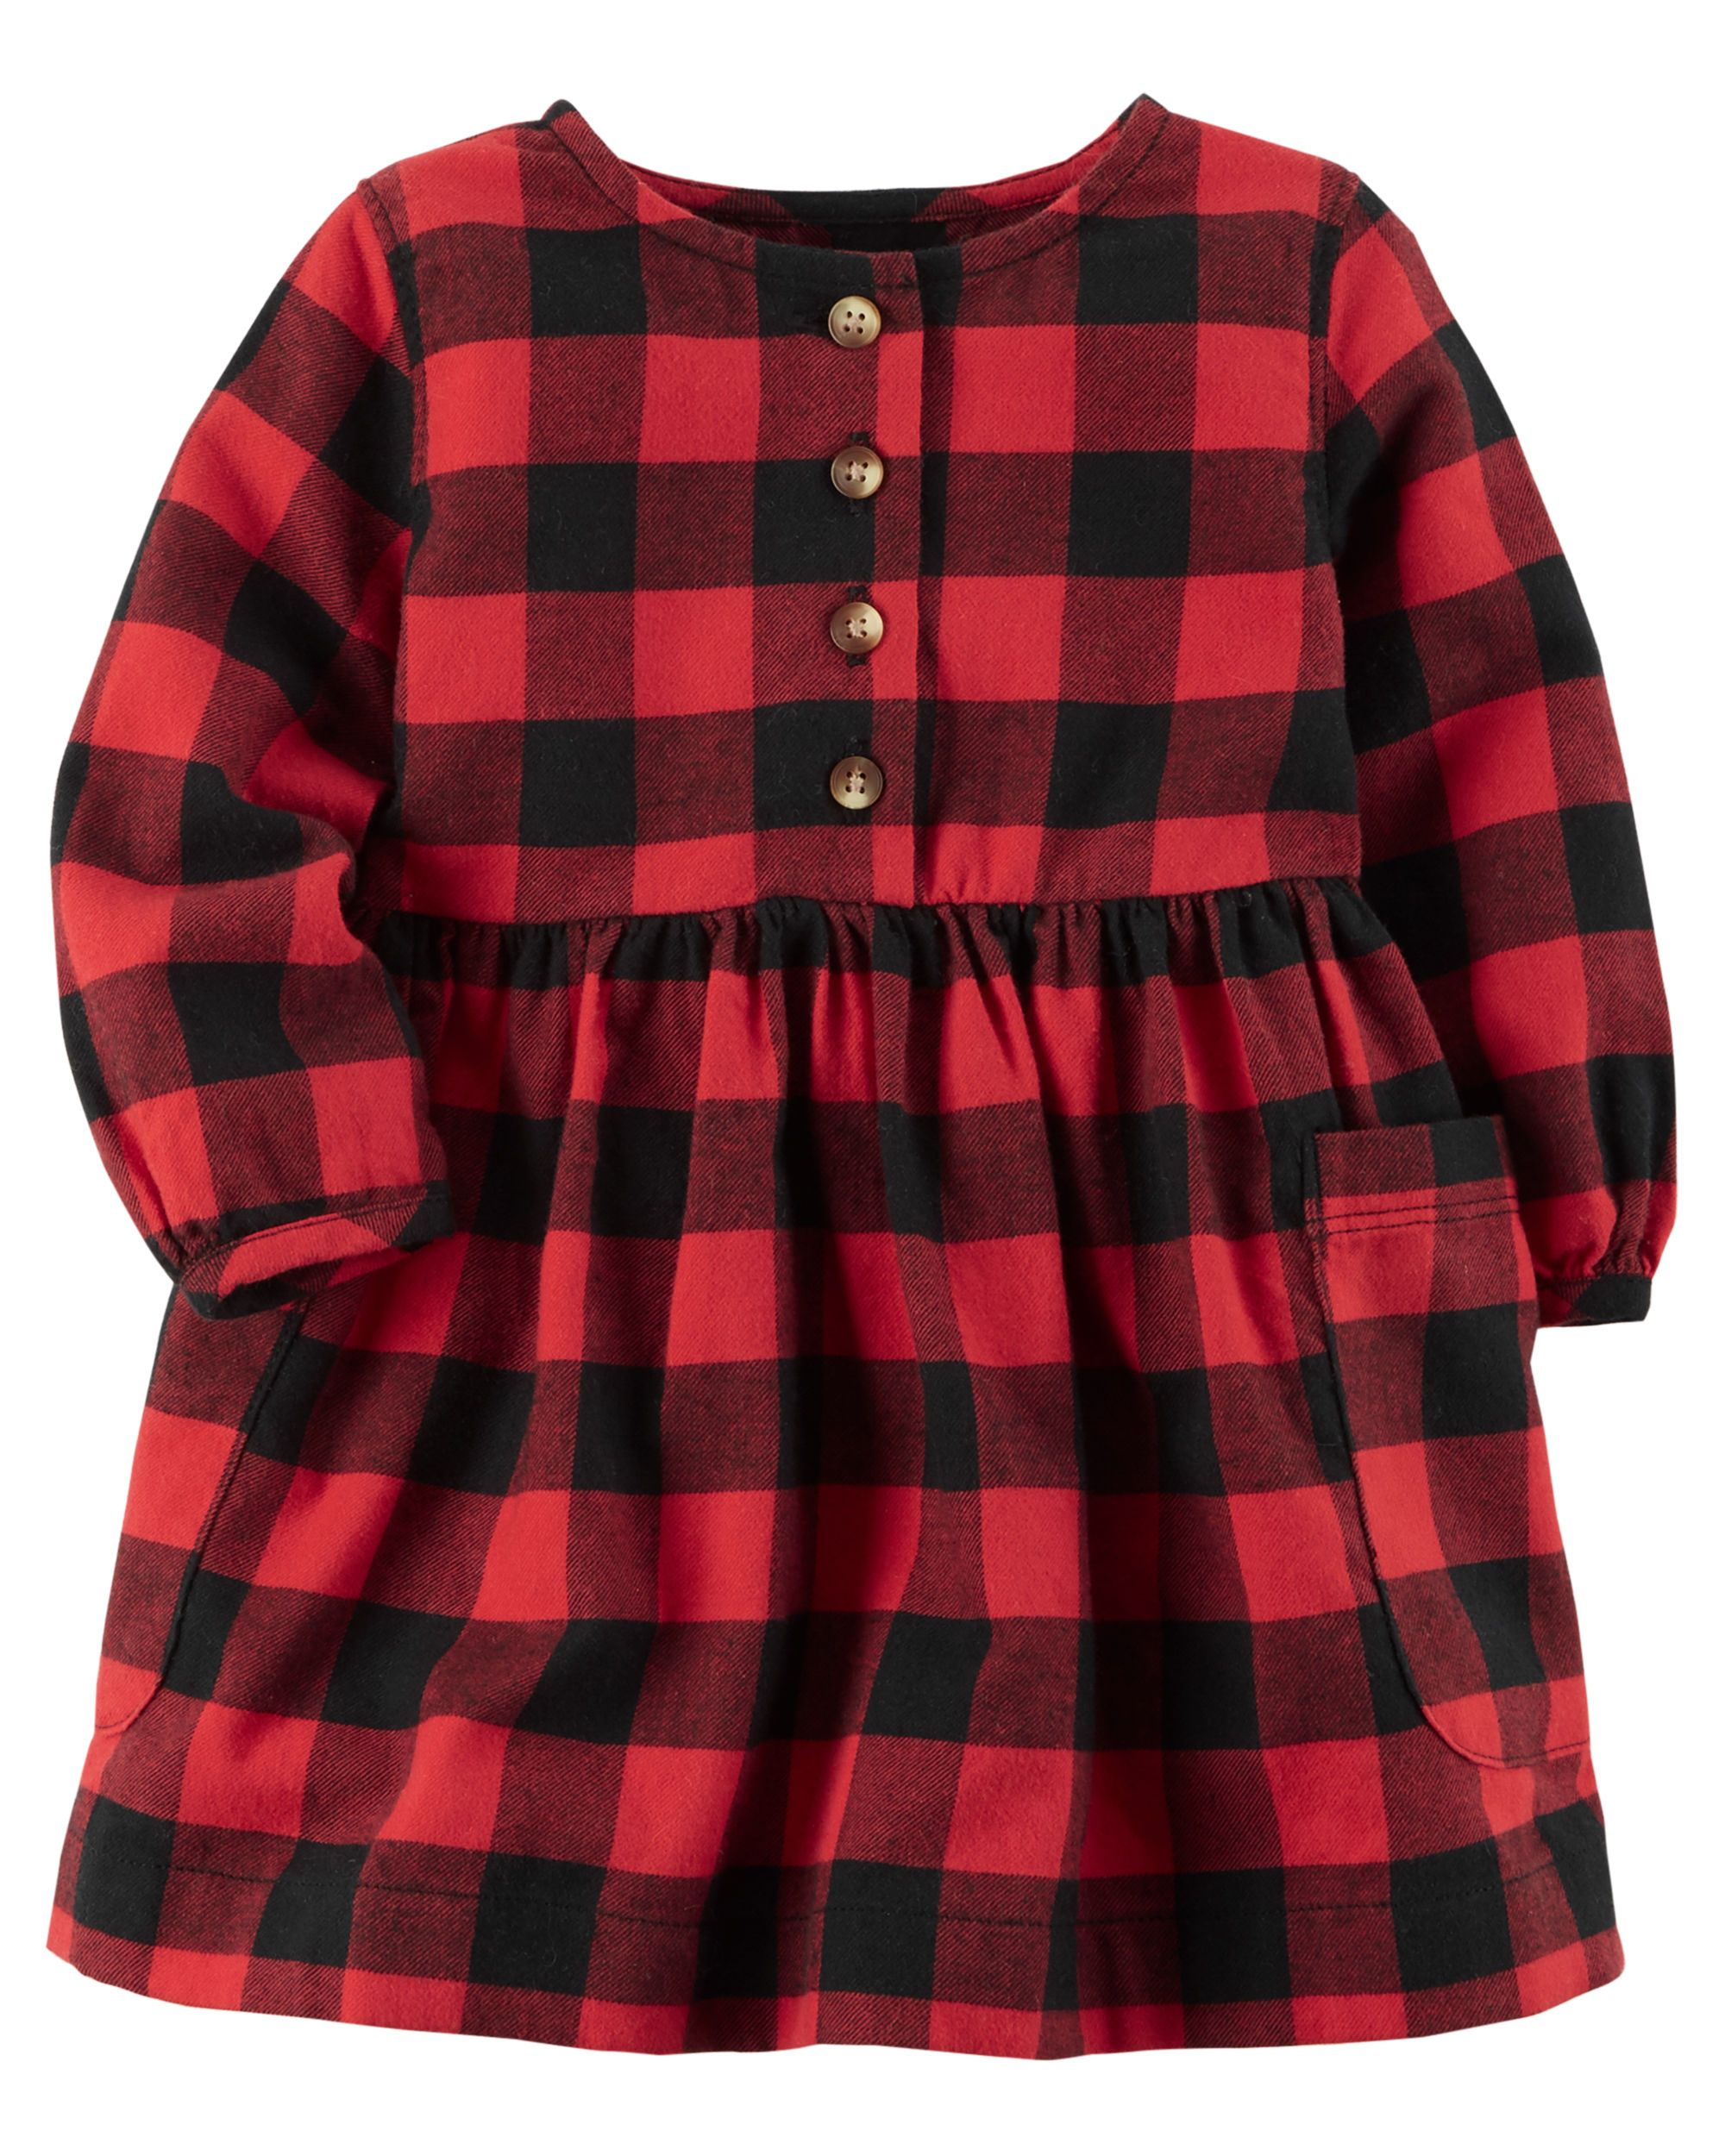 NWT Baby toddler kid GIRL dress plaid pleats CHOOSE color and size